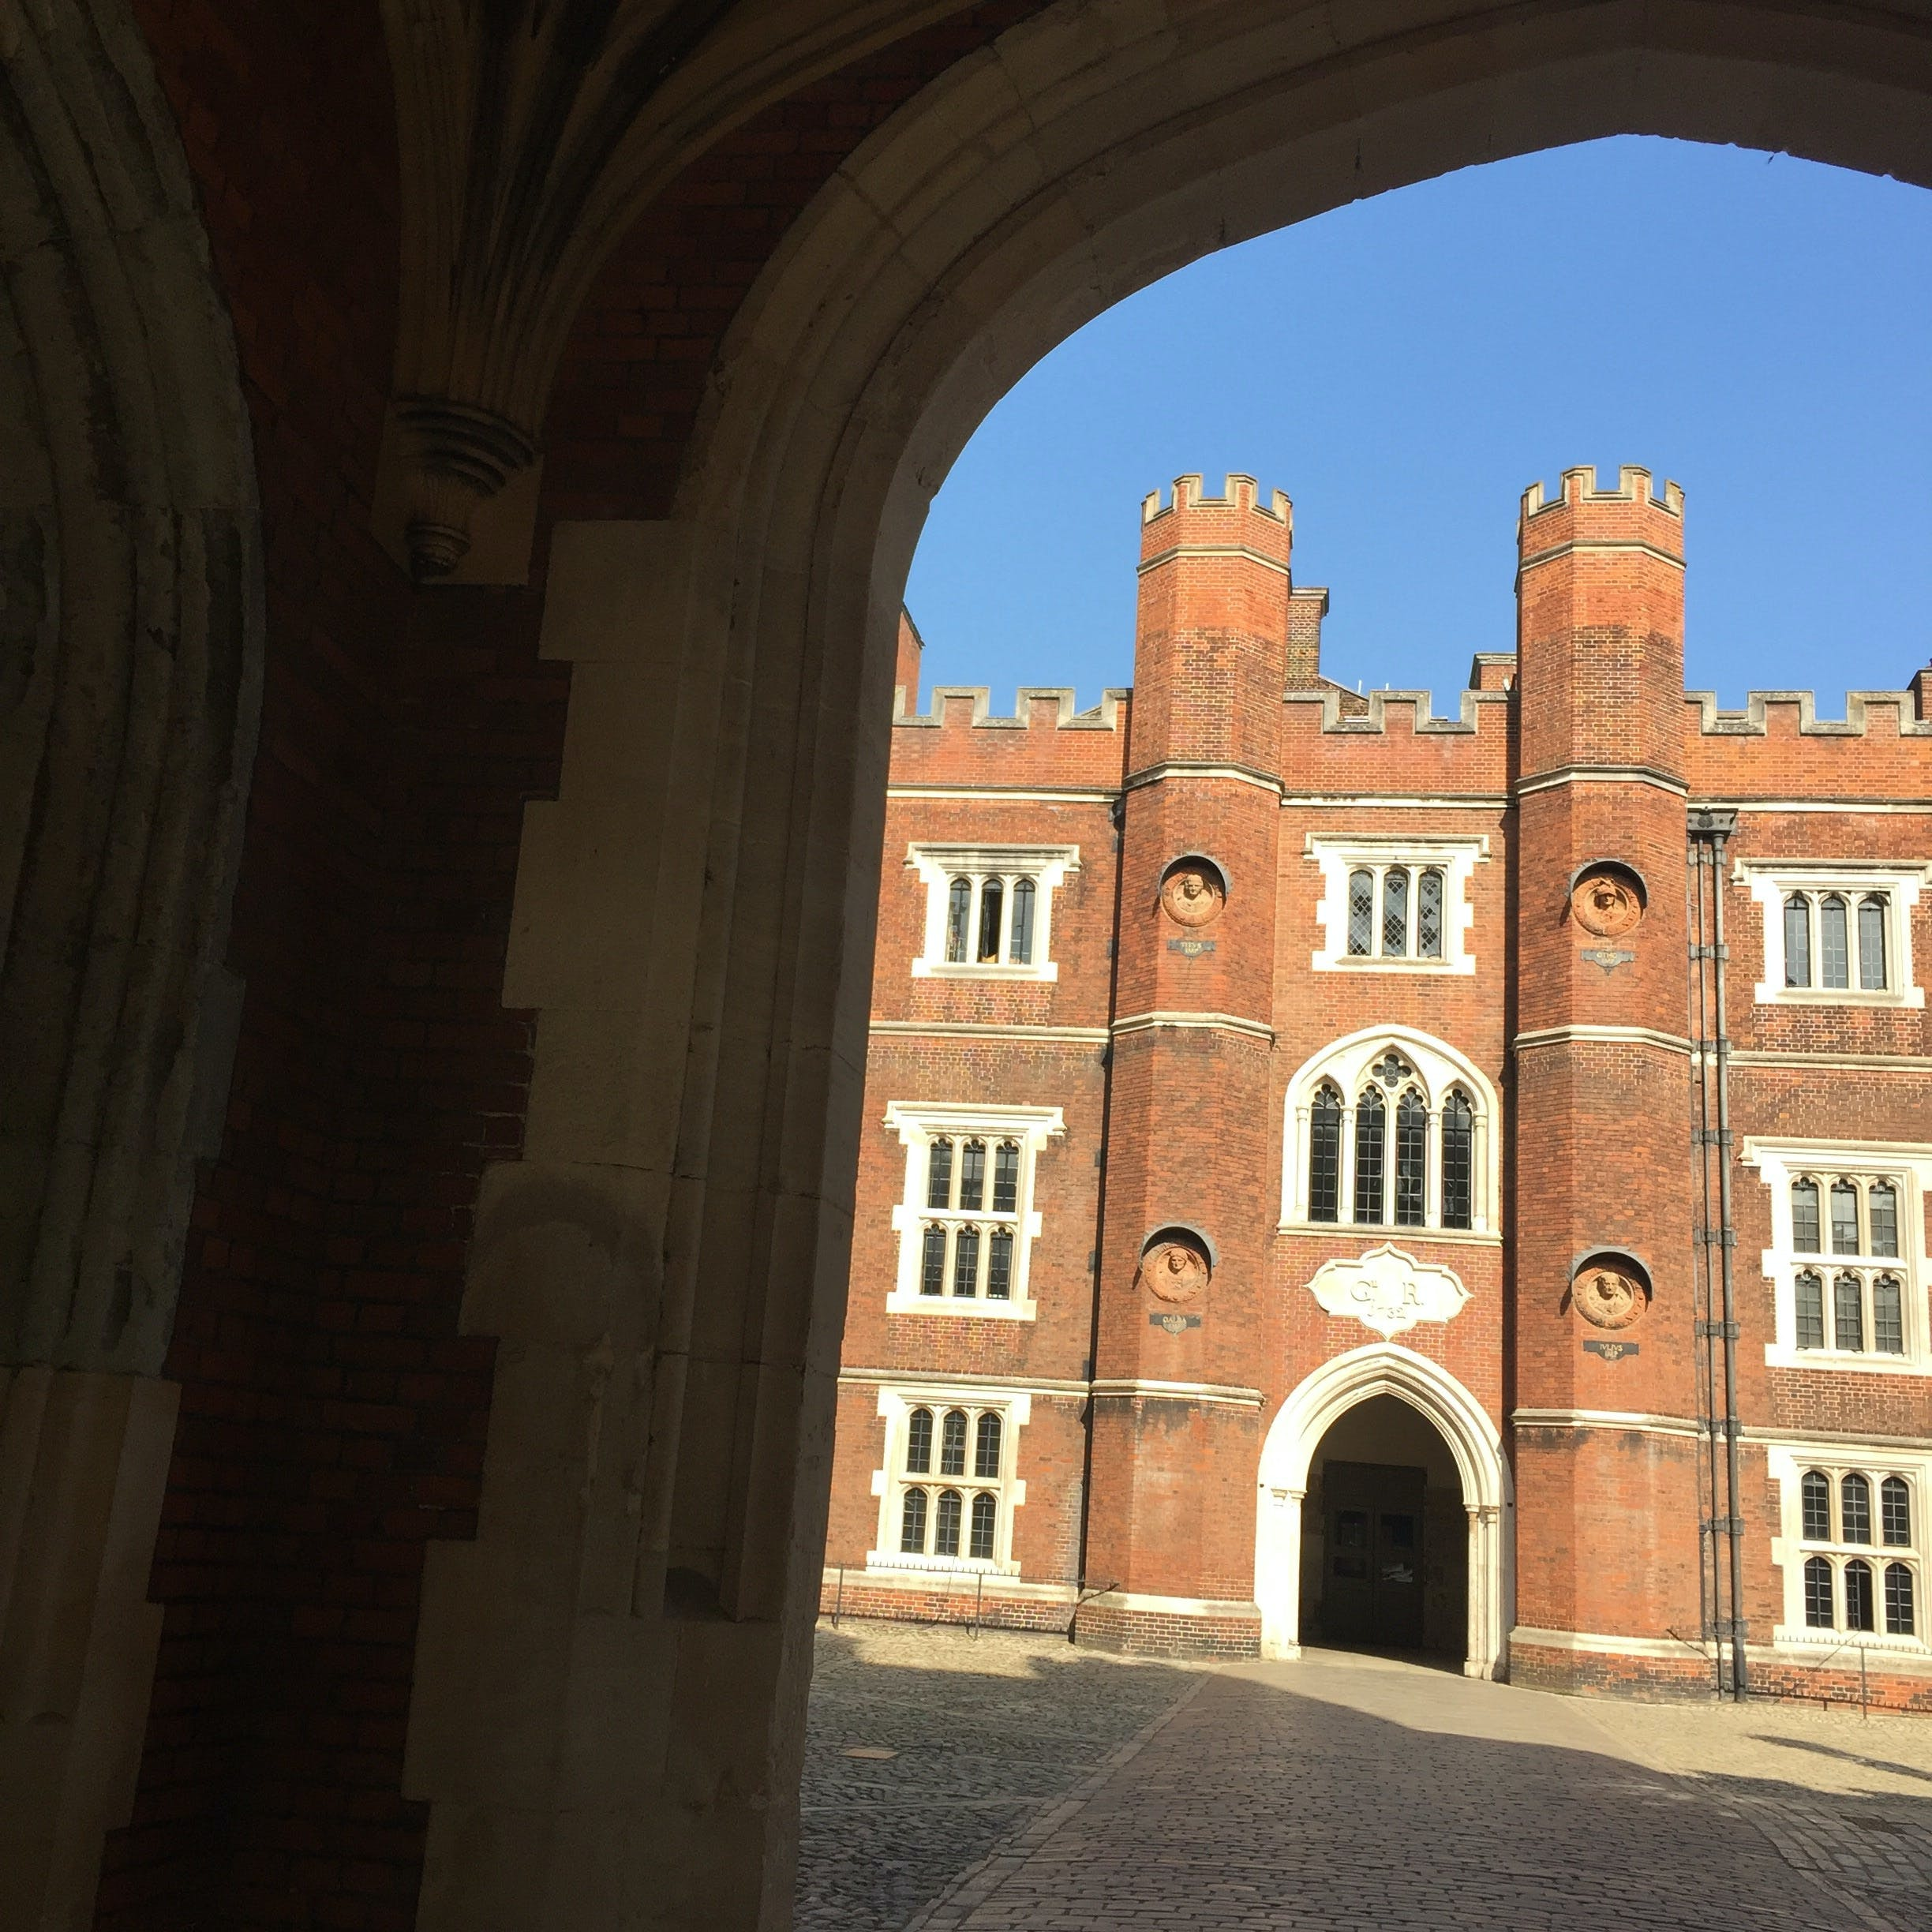 Clock Court at Hampton Court Palace in the sunshine